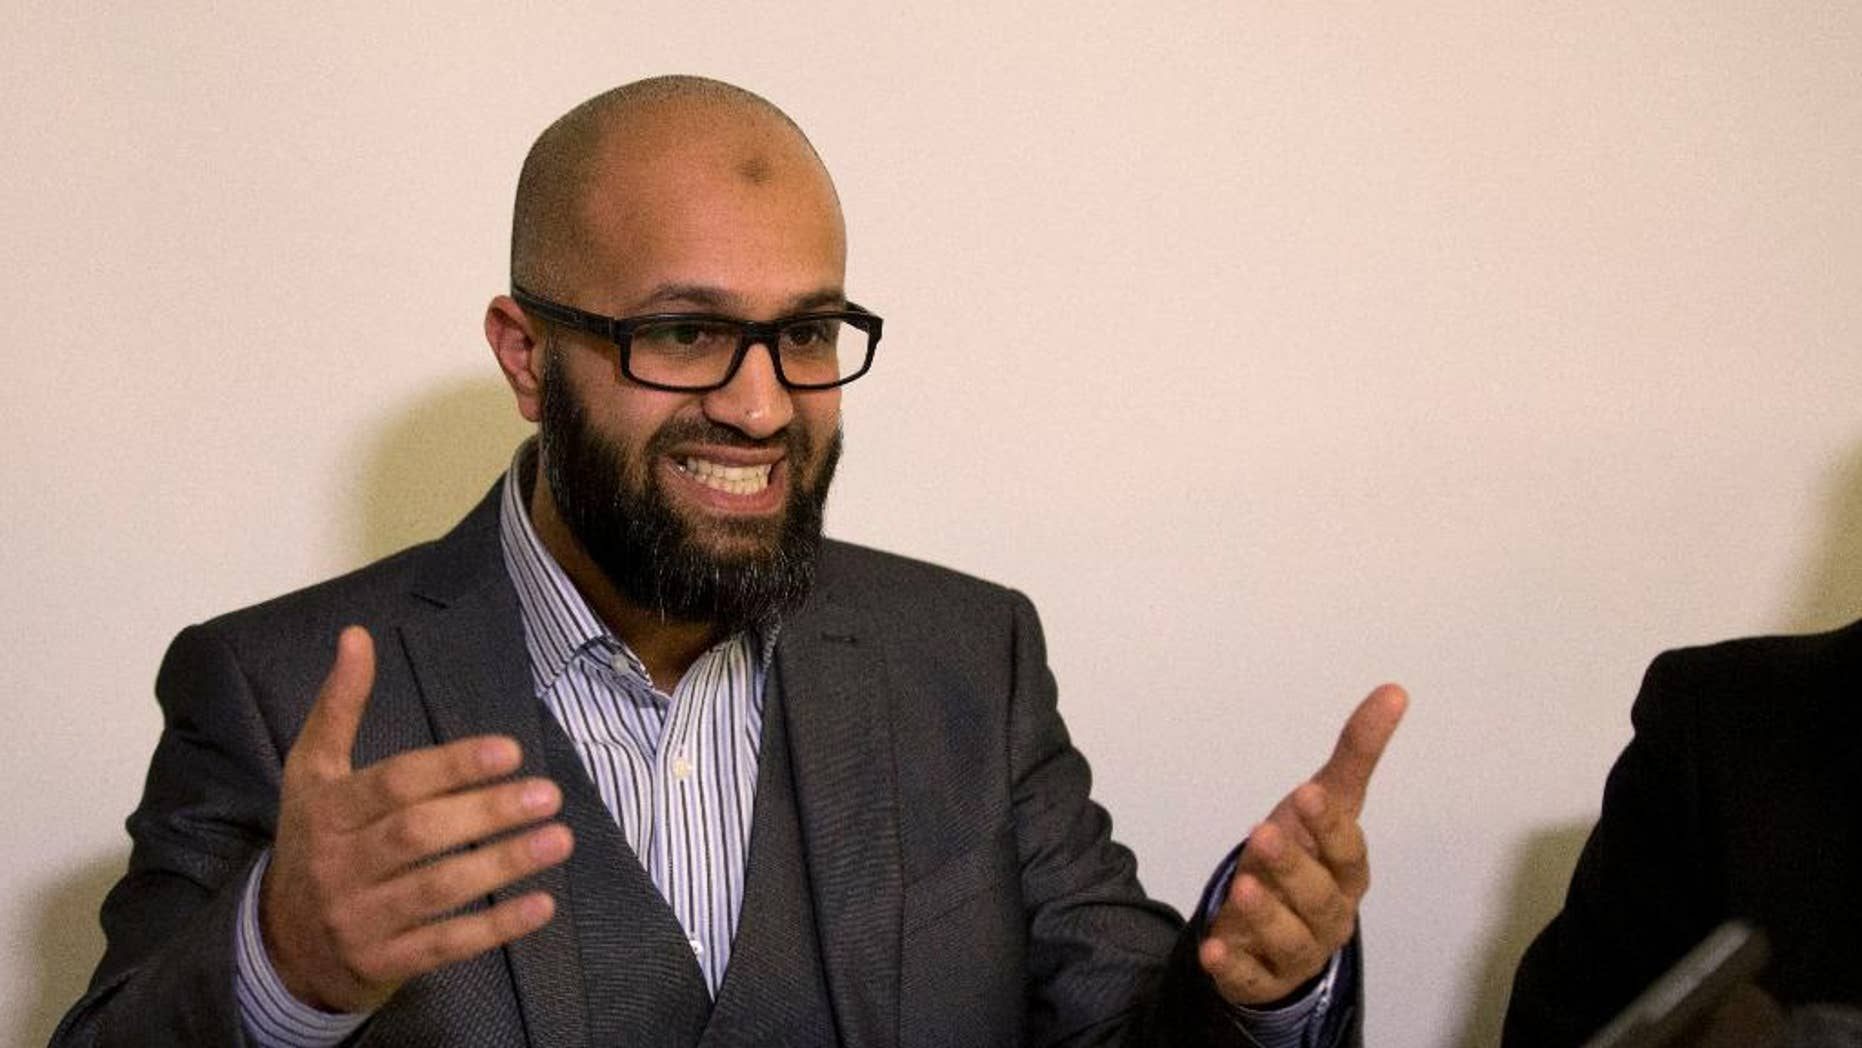 CAGE research director, Asim Qureshi talks during a press conference held by the CAGE human rights charity in London, Thursday, Feb. 26, 2015. A British-accented militant who has appeared in beheading videos released by the Islamic State group in Syria bears ìstriking similaritiesî to a man who grew up in London, a Muslim lobbying group said Thursday. Mohammed Emwazi has been identified by news organizations as the masked militant more commonly known as ìJihadi John.î London-based CAGE, which works with Muslims in conflict with British intelligence services, said Thursday its research director, Asim Qureshi, saw strong similarities, but because of the hood worn by the militant, ìthere was no way he could be 100 percent certain.î (AP Photo/Matt Dunham)